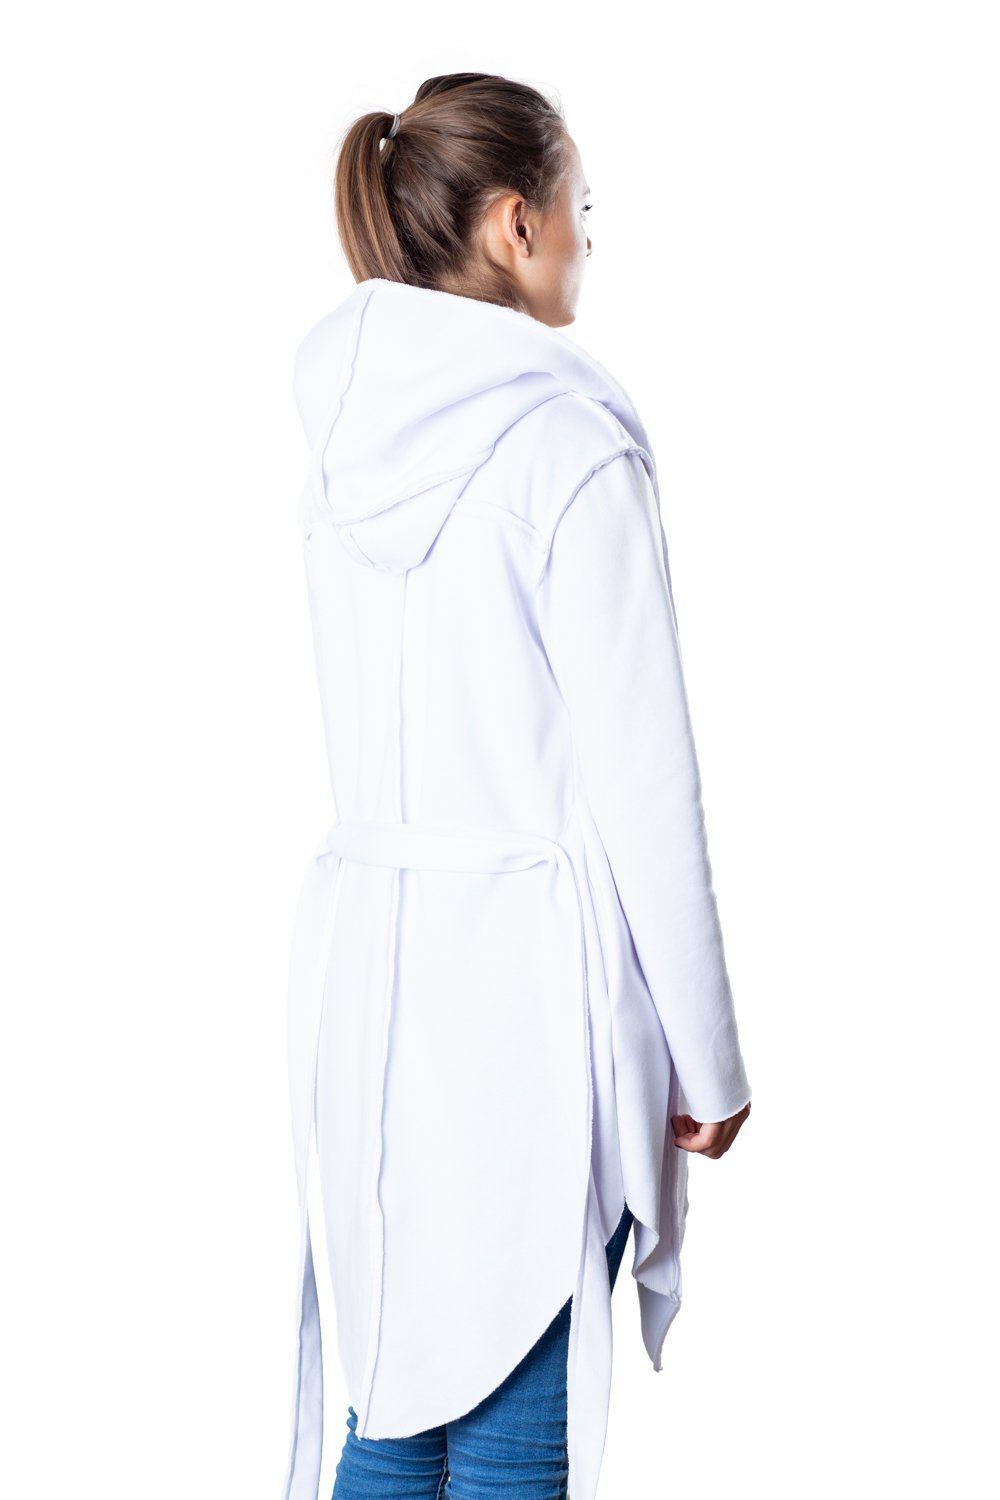 TheG Woman Designer Cardigan 2.0 // white